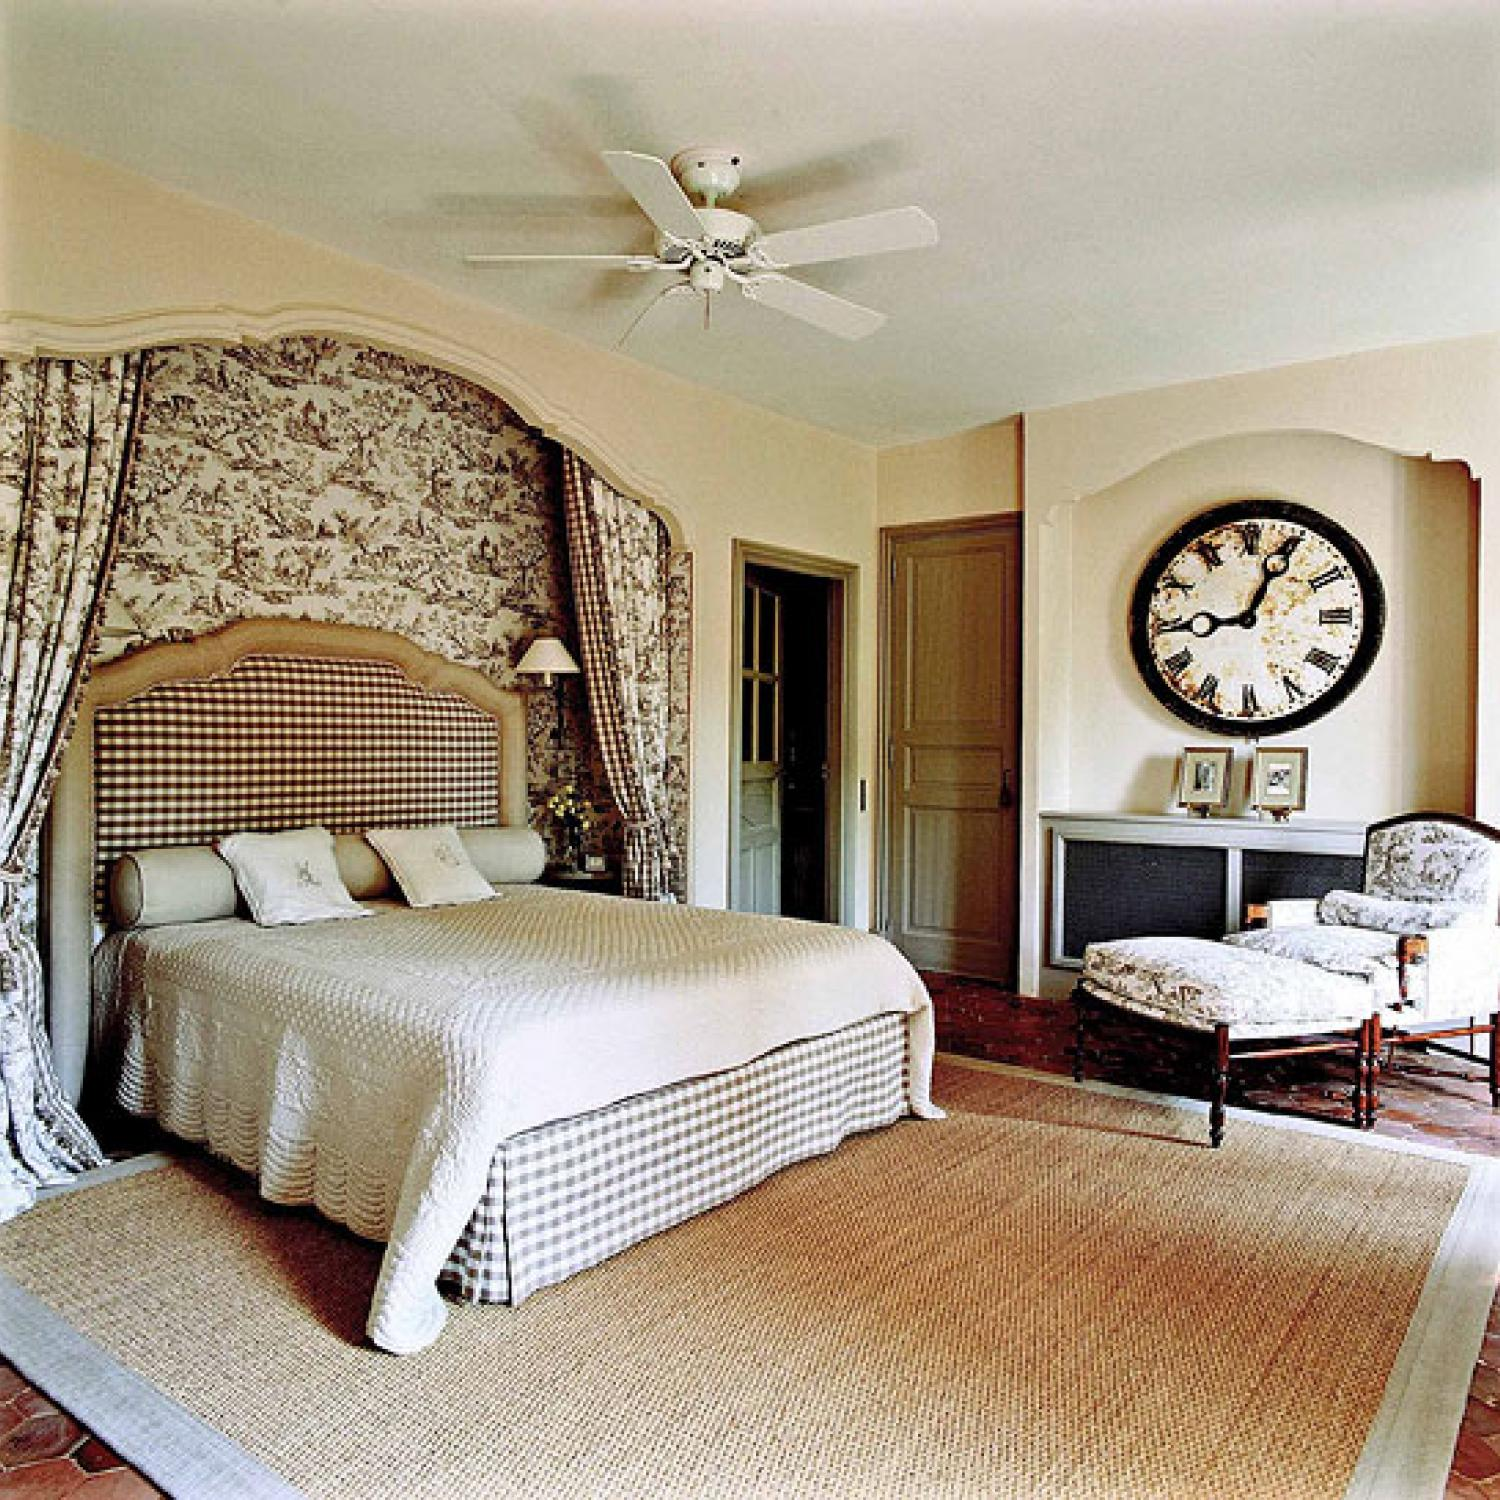 Bedroom Decorating Ideas: Totally Toile | Traditional Home on Bedroom Decoration Ideas  id=19137